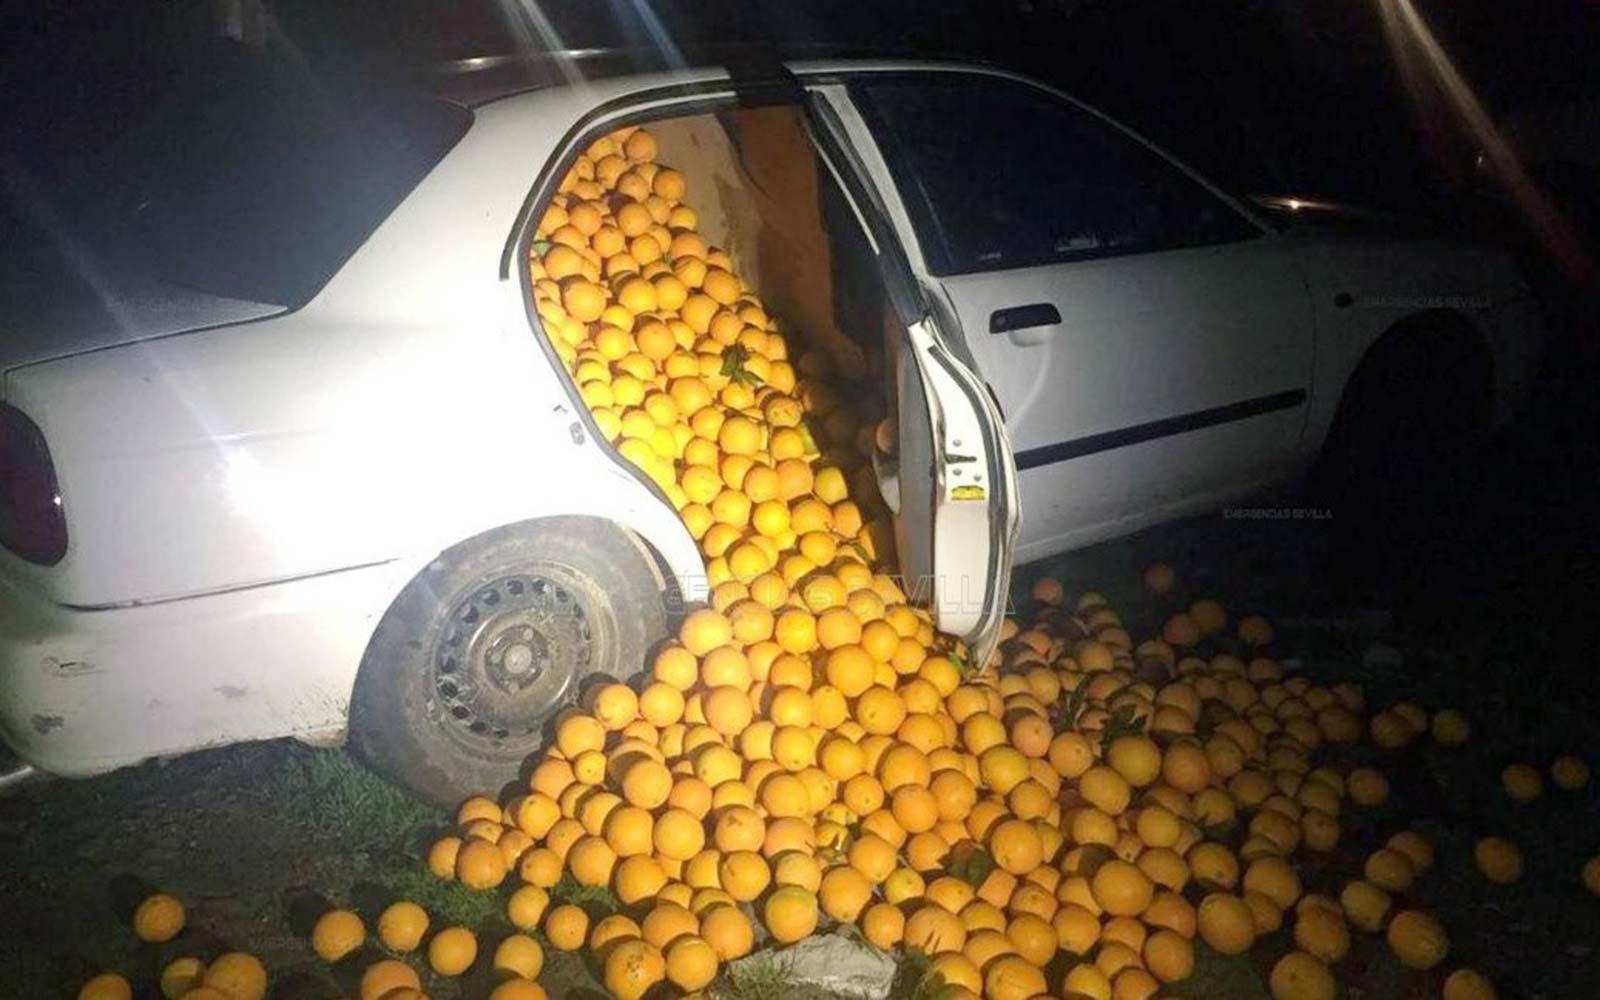 Family Steals 8,000 Pounds of Oranges in Spain, Gets Arrested